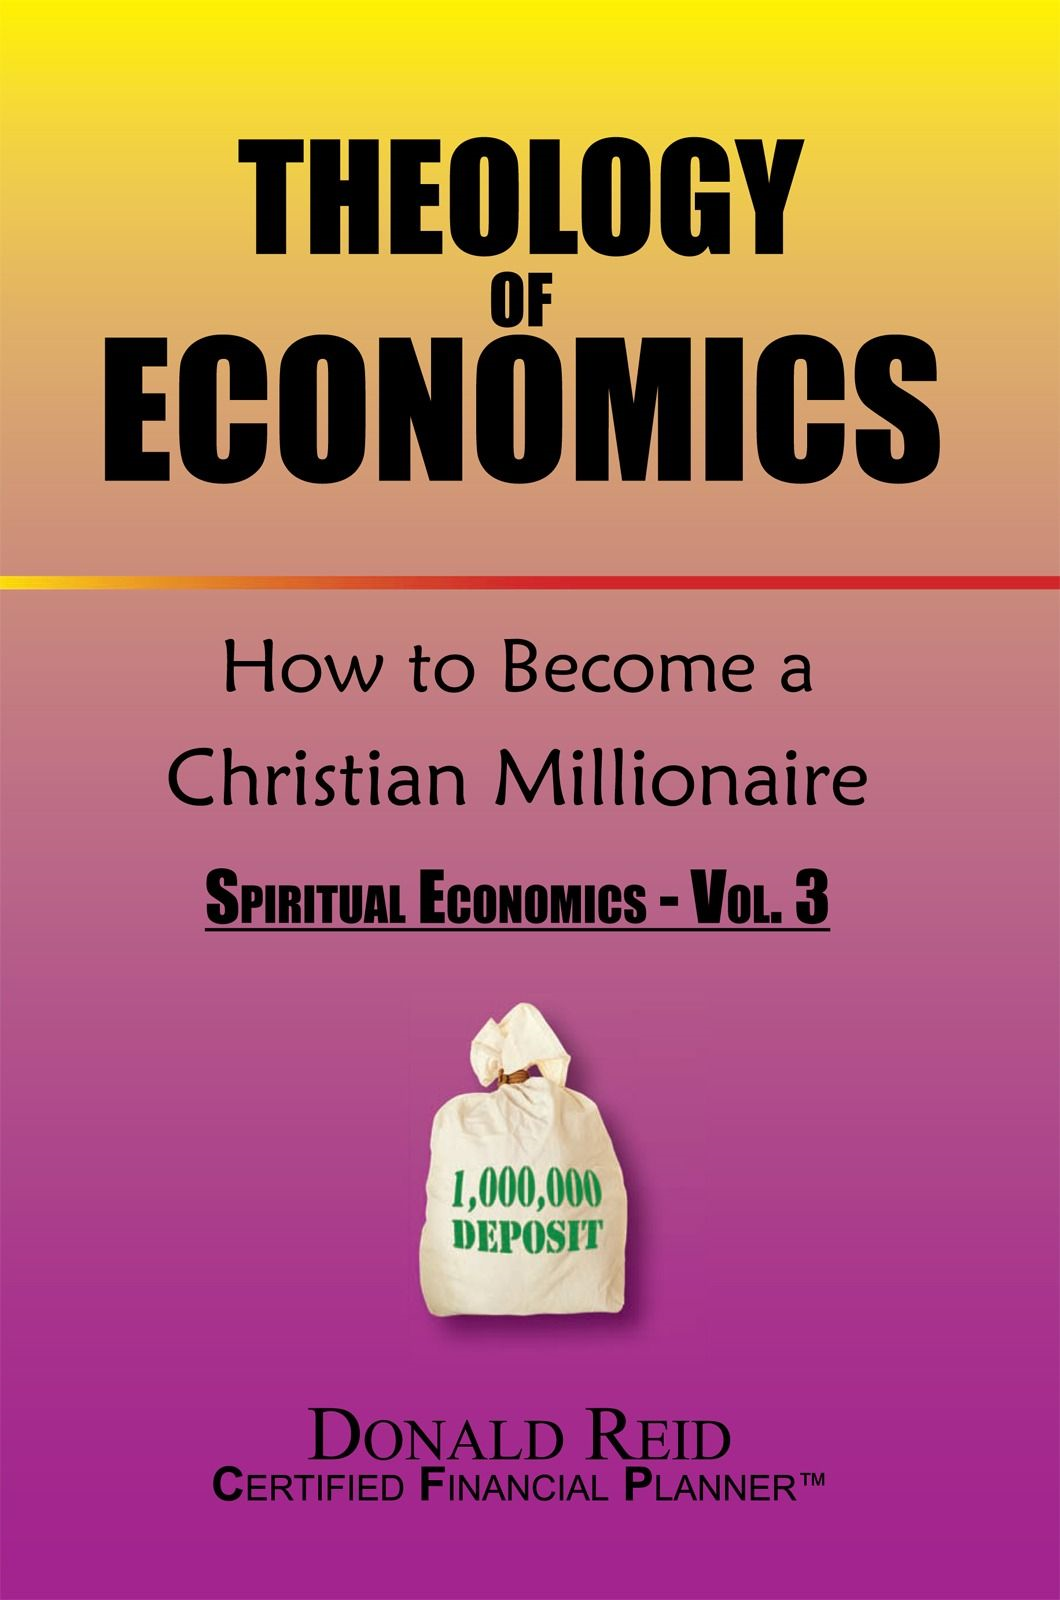 Theology of Economics: How to Become a Christian Millionaire